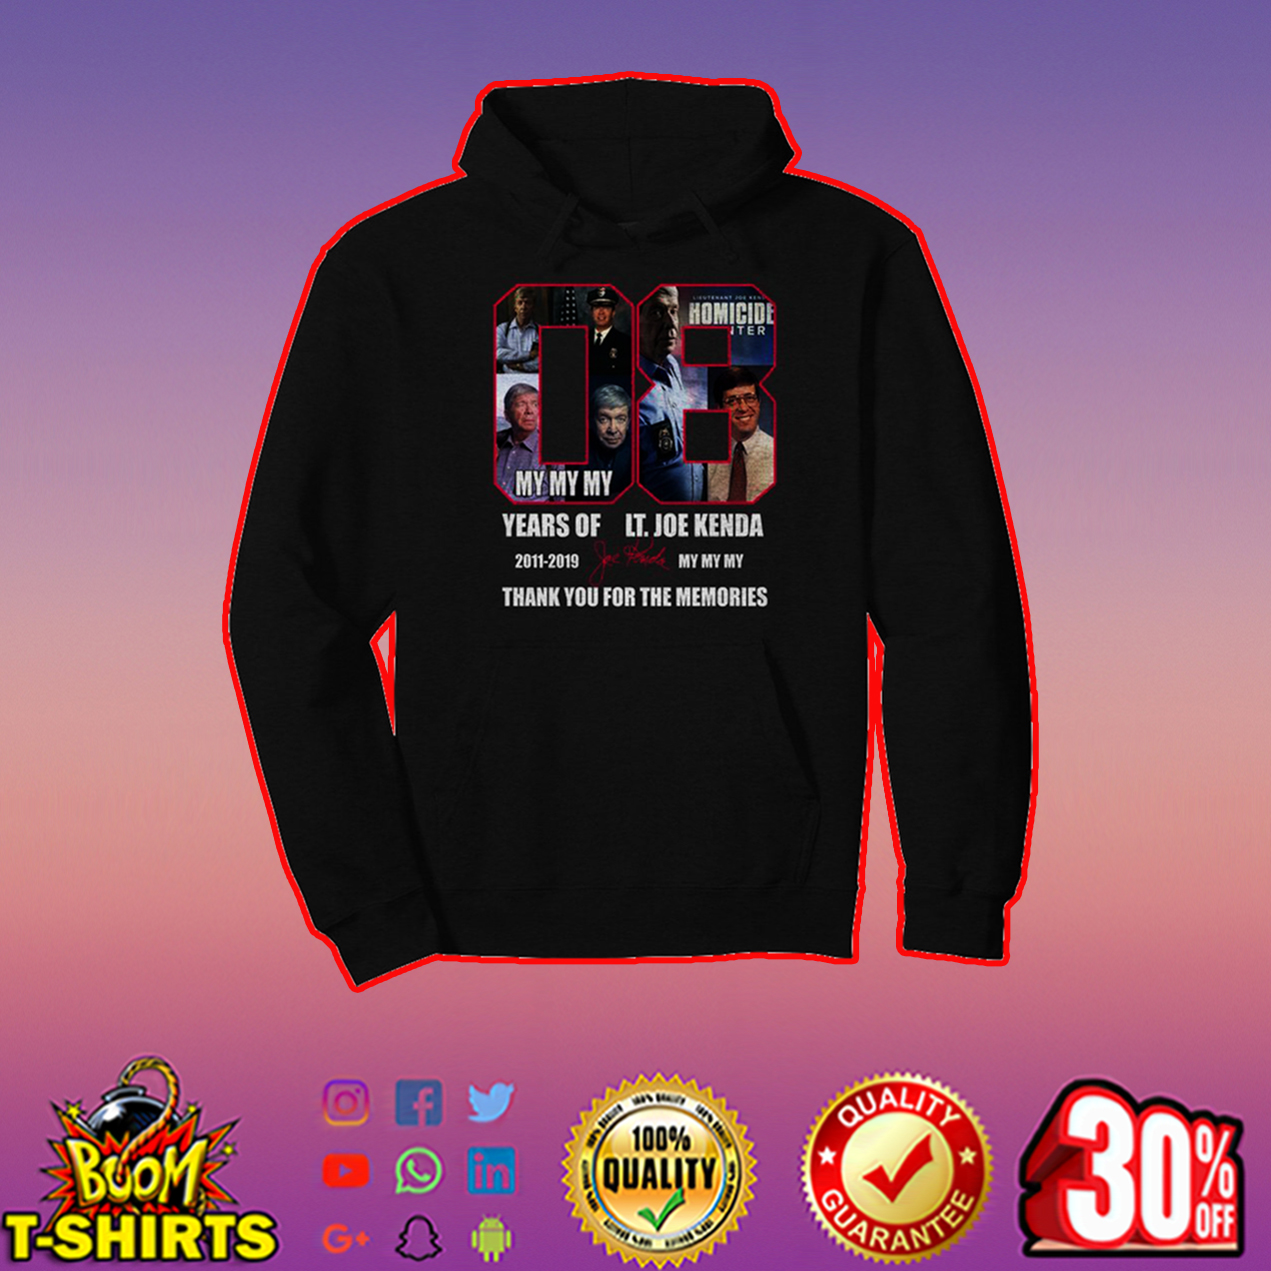 8 years of LT Joe Kenda thank you for the memories hoodie